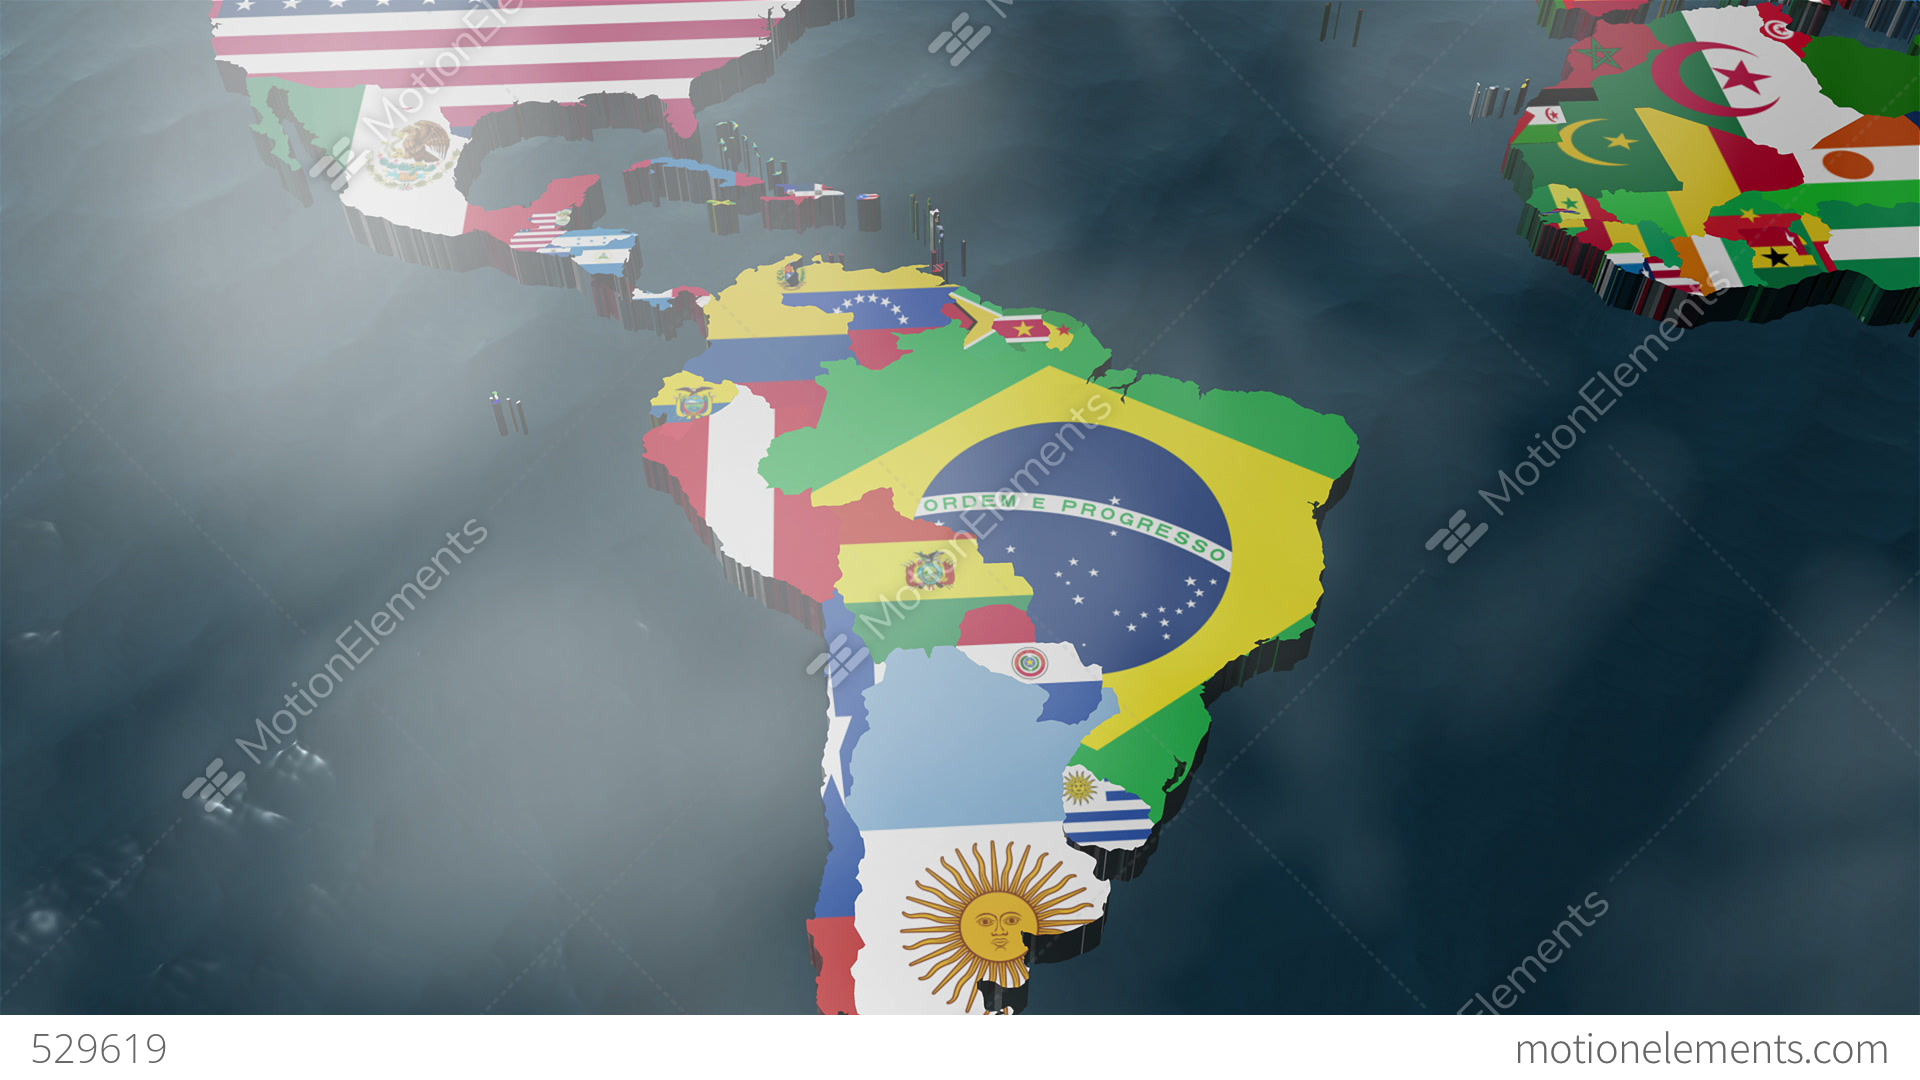 3D World Map to South America with